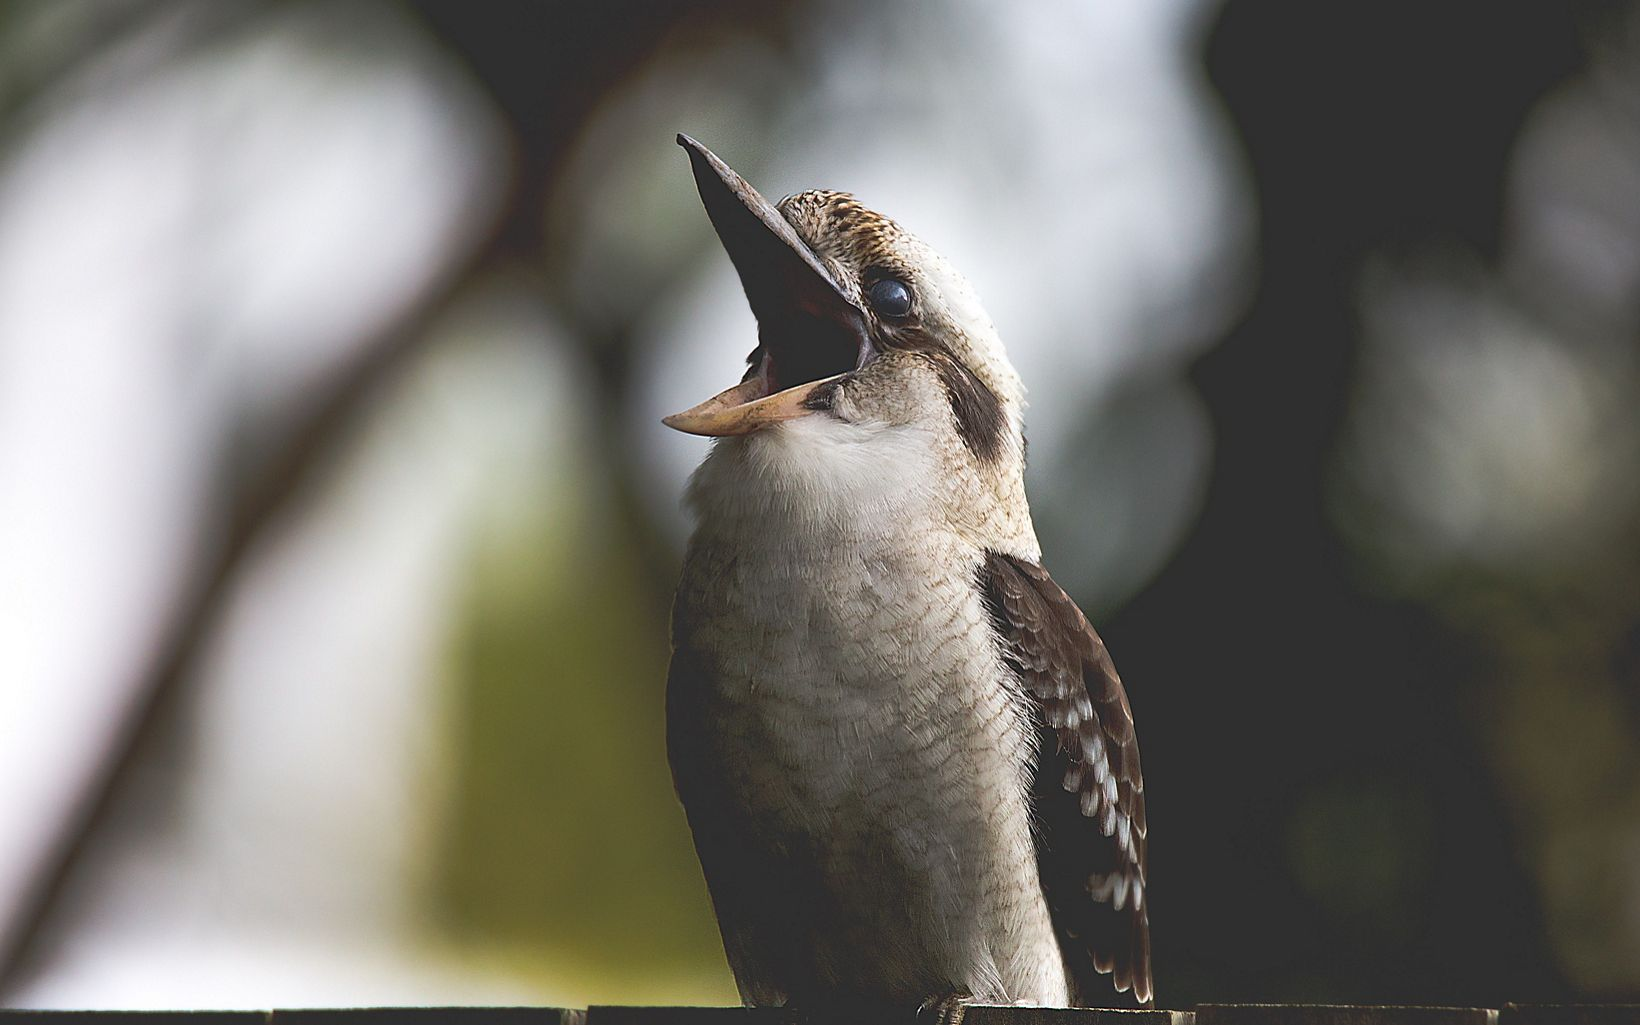 Kookaburras are the largest members of the kingfisher family